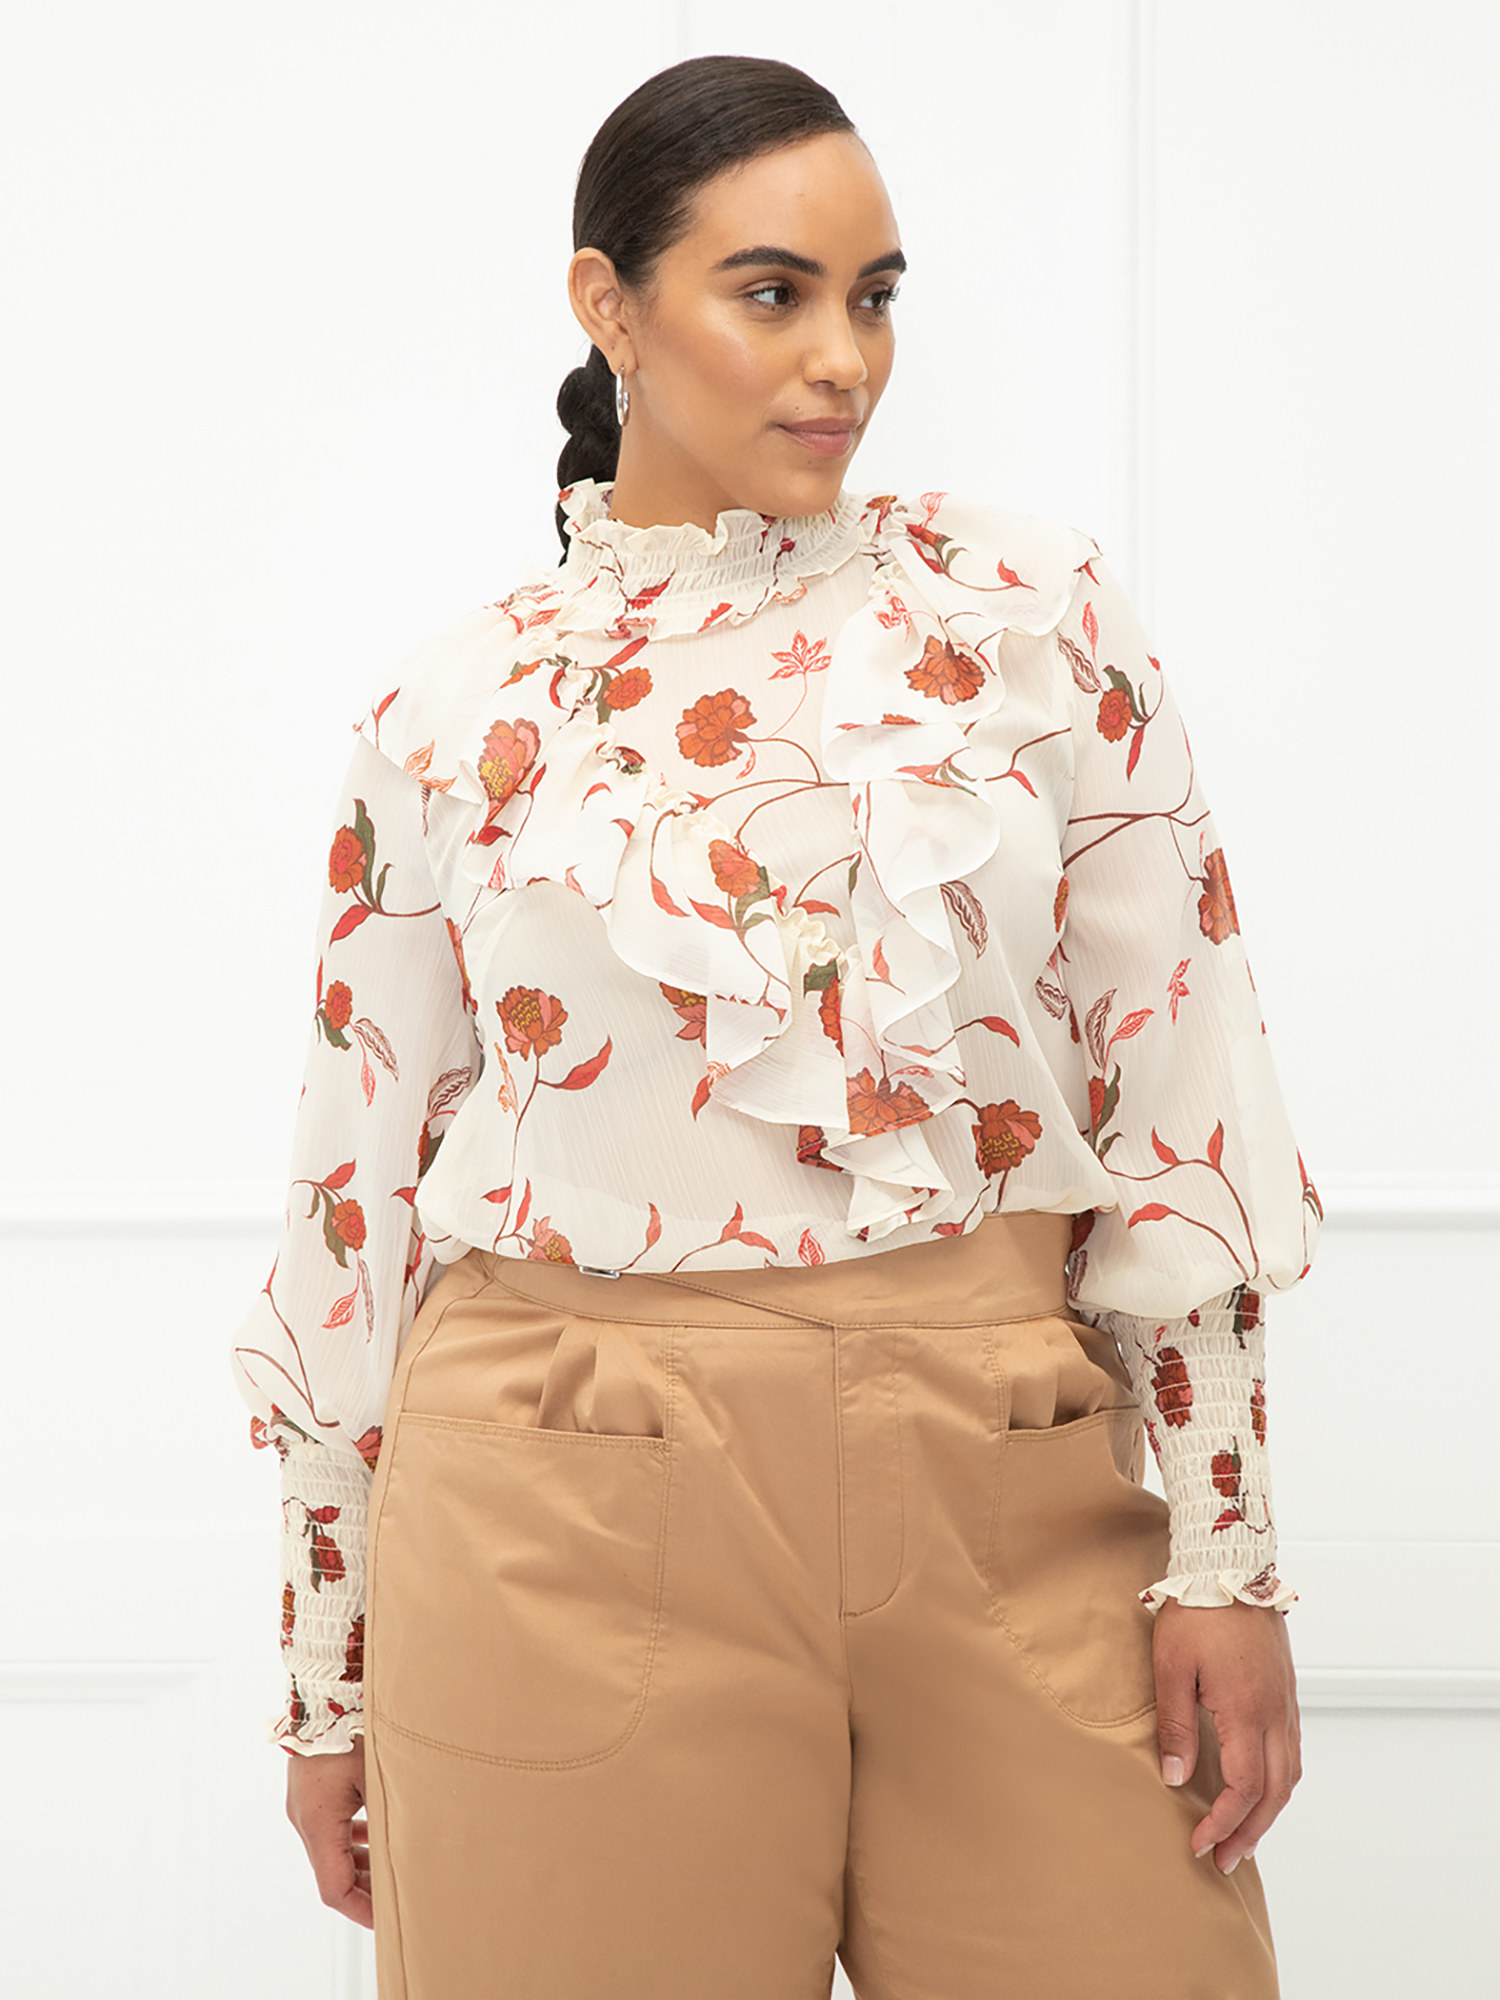 model wearing the long-sleeve ruffle top in cream with red flowers on it